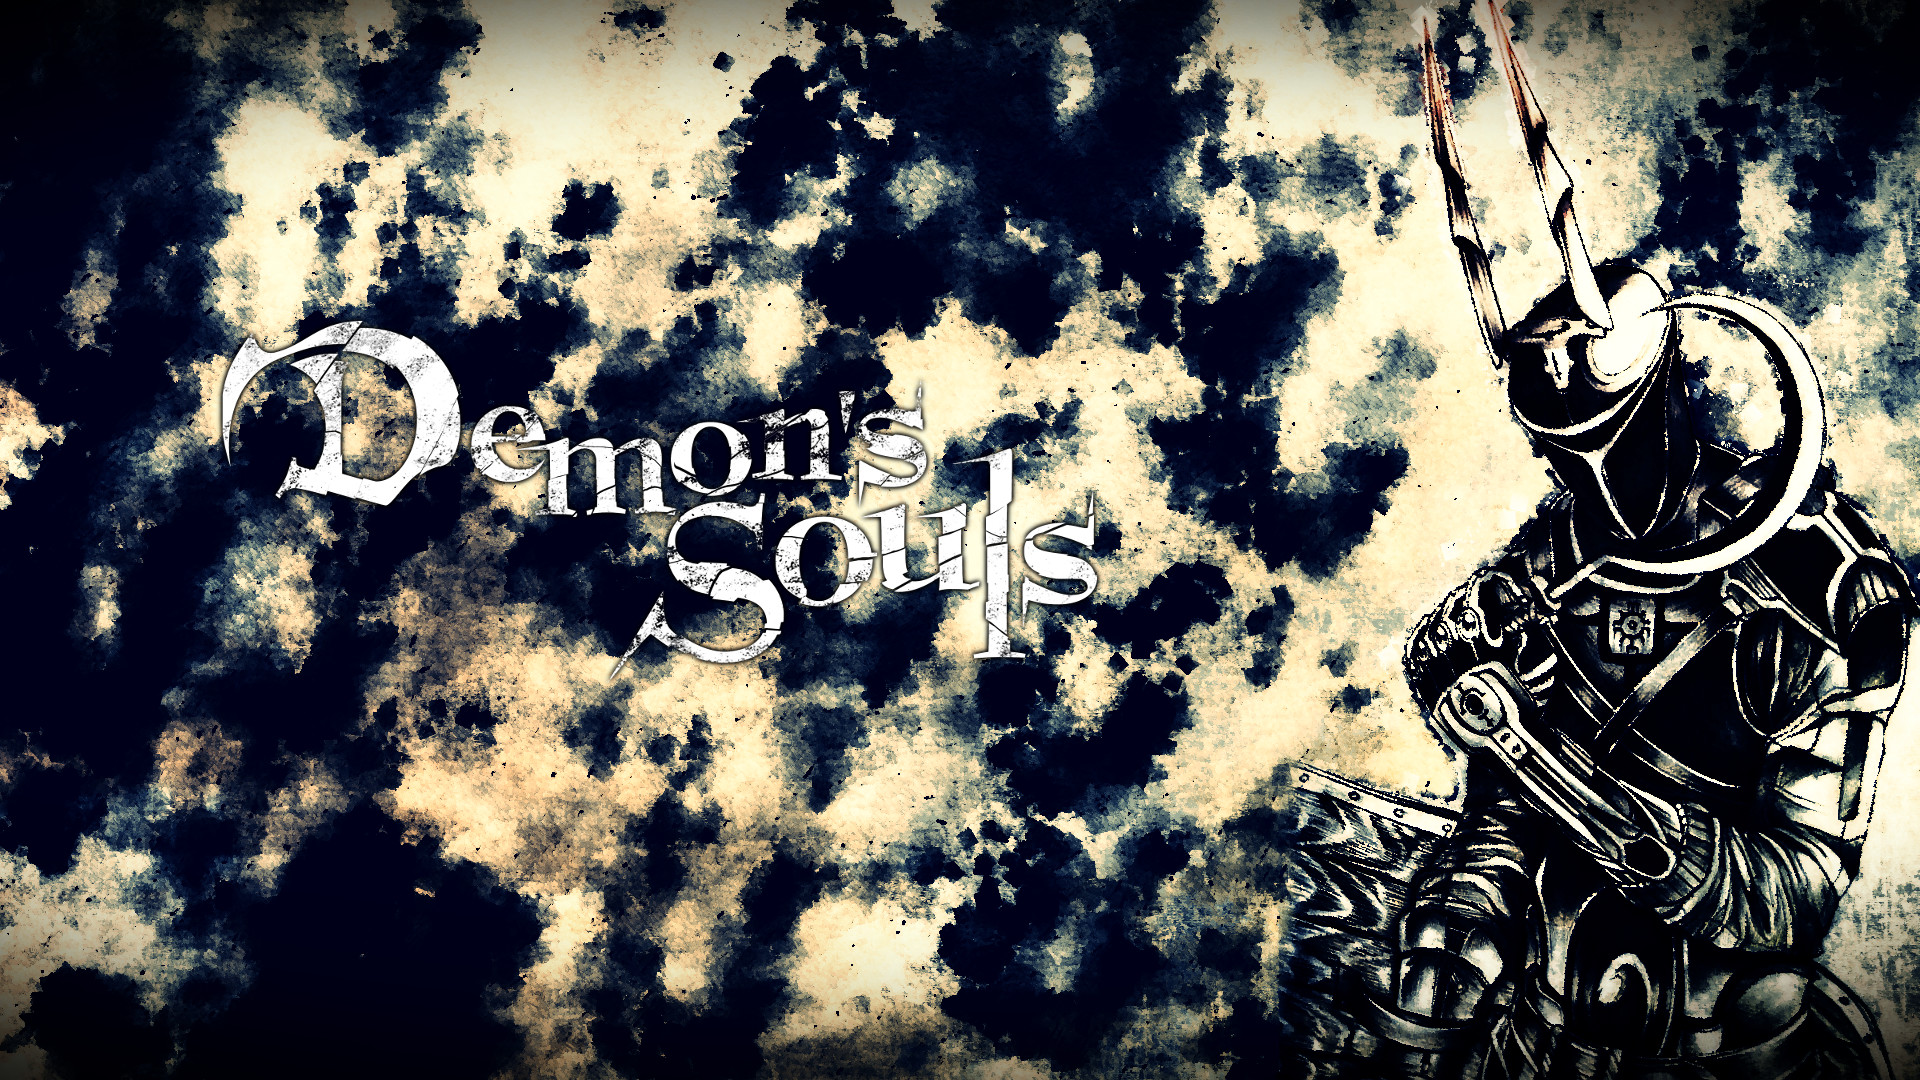 Res: 1920x1080, Demon's Souls Yurt Wallpaper by DragunowX Demon's Souls Yurt Wallpaper by  DragunowX